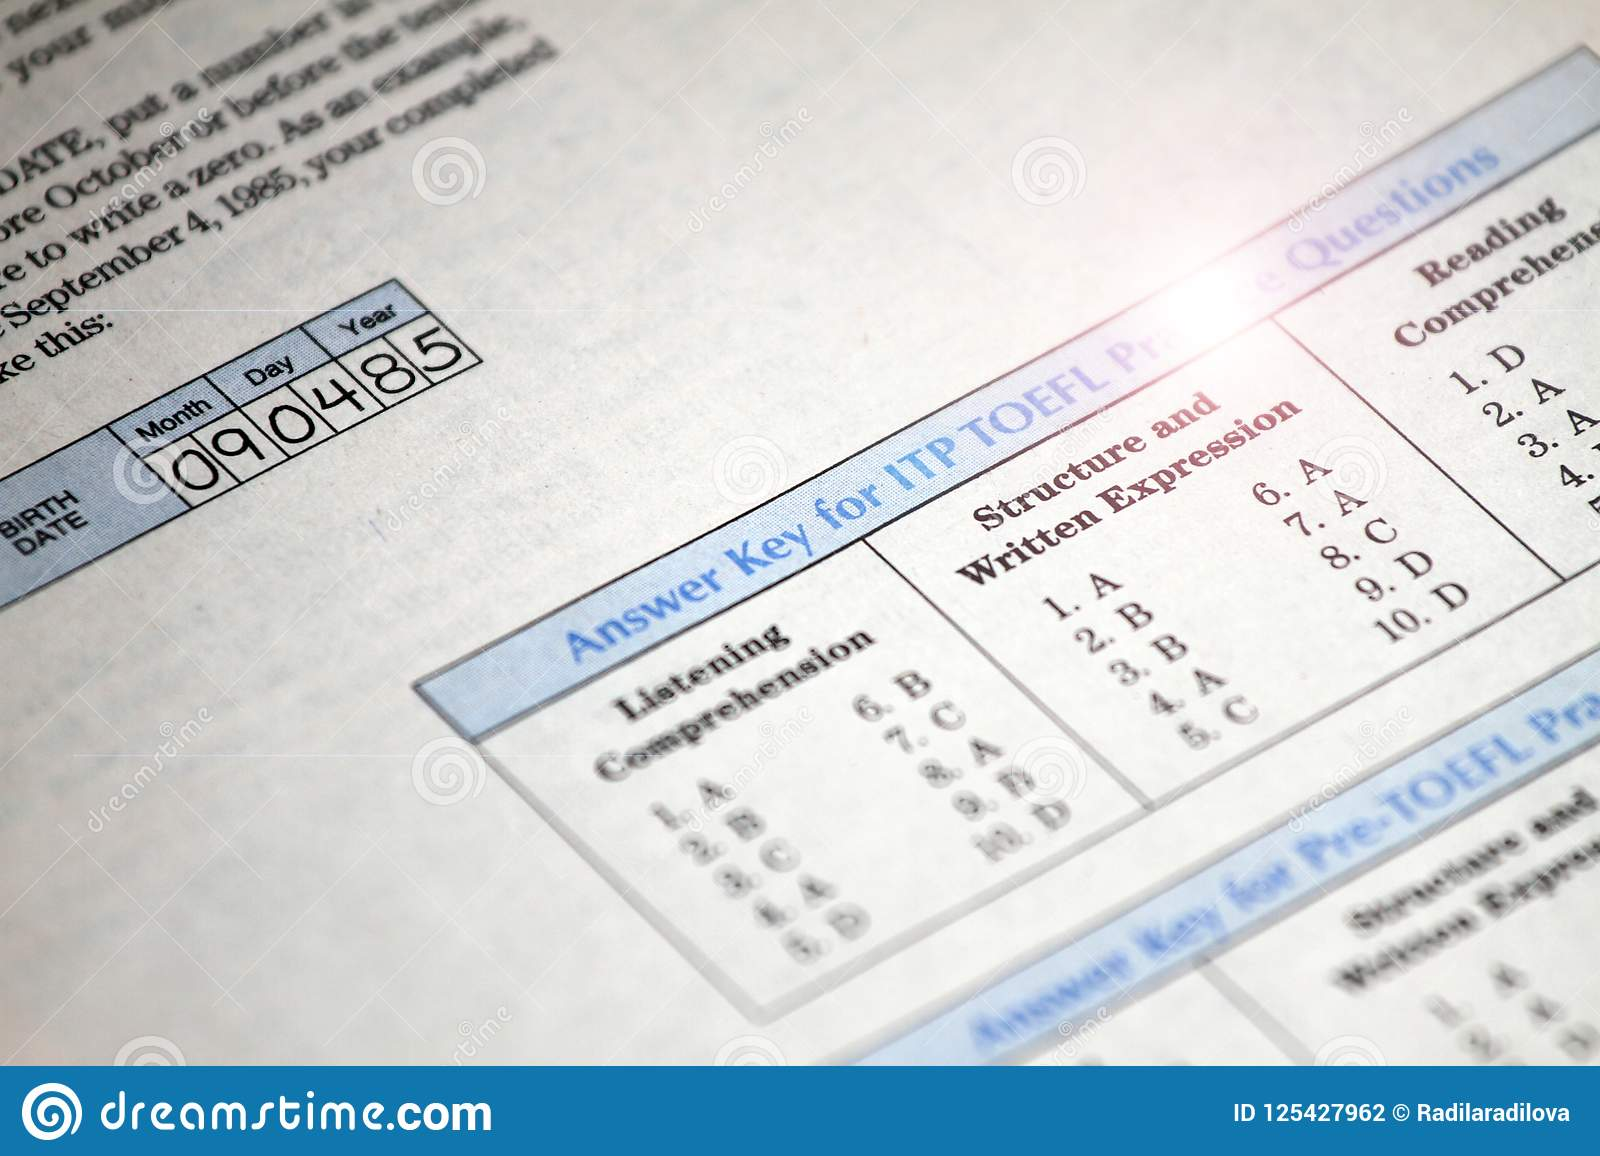 Answer Key For Test Exam College, School And University